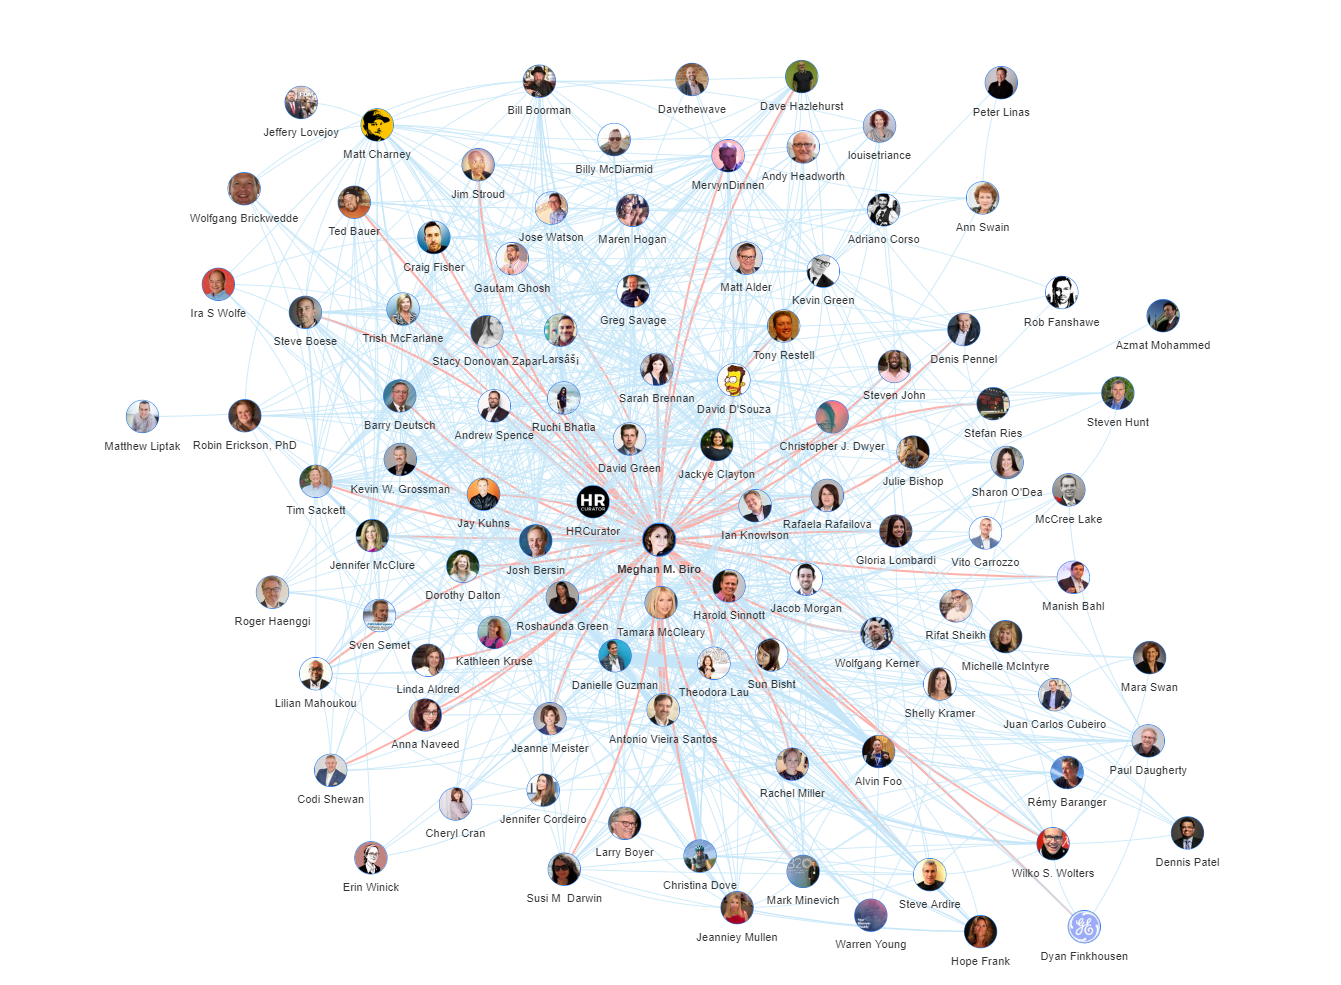 Onalytica Future of Recruitment Top 100 Influencers